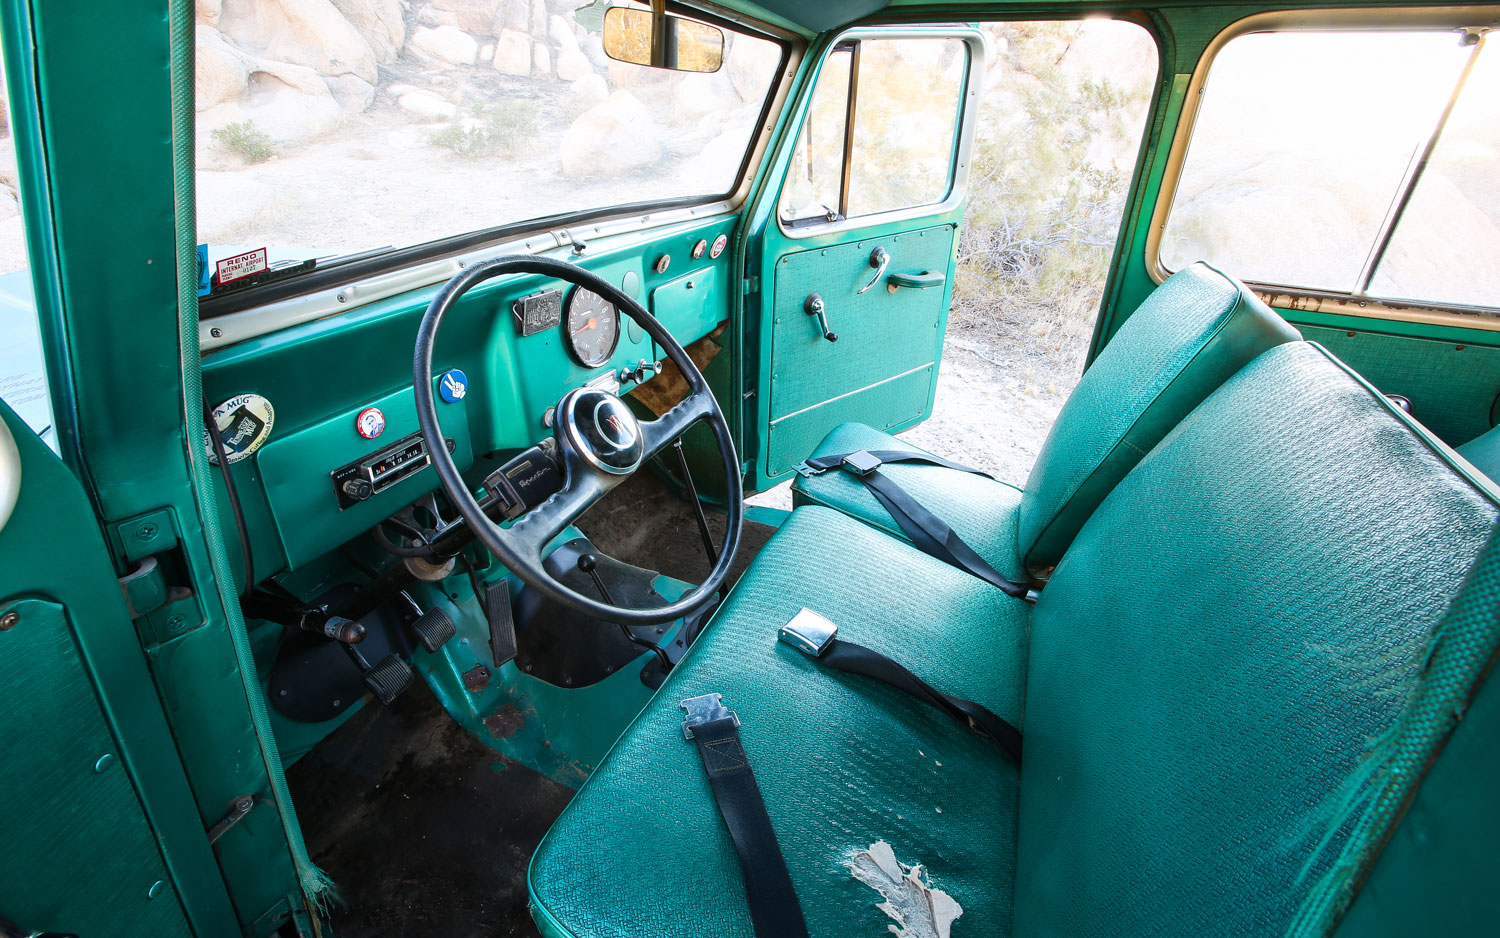 1962 Willys Wagon First Drive - Truck Trend